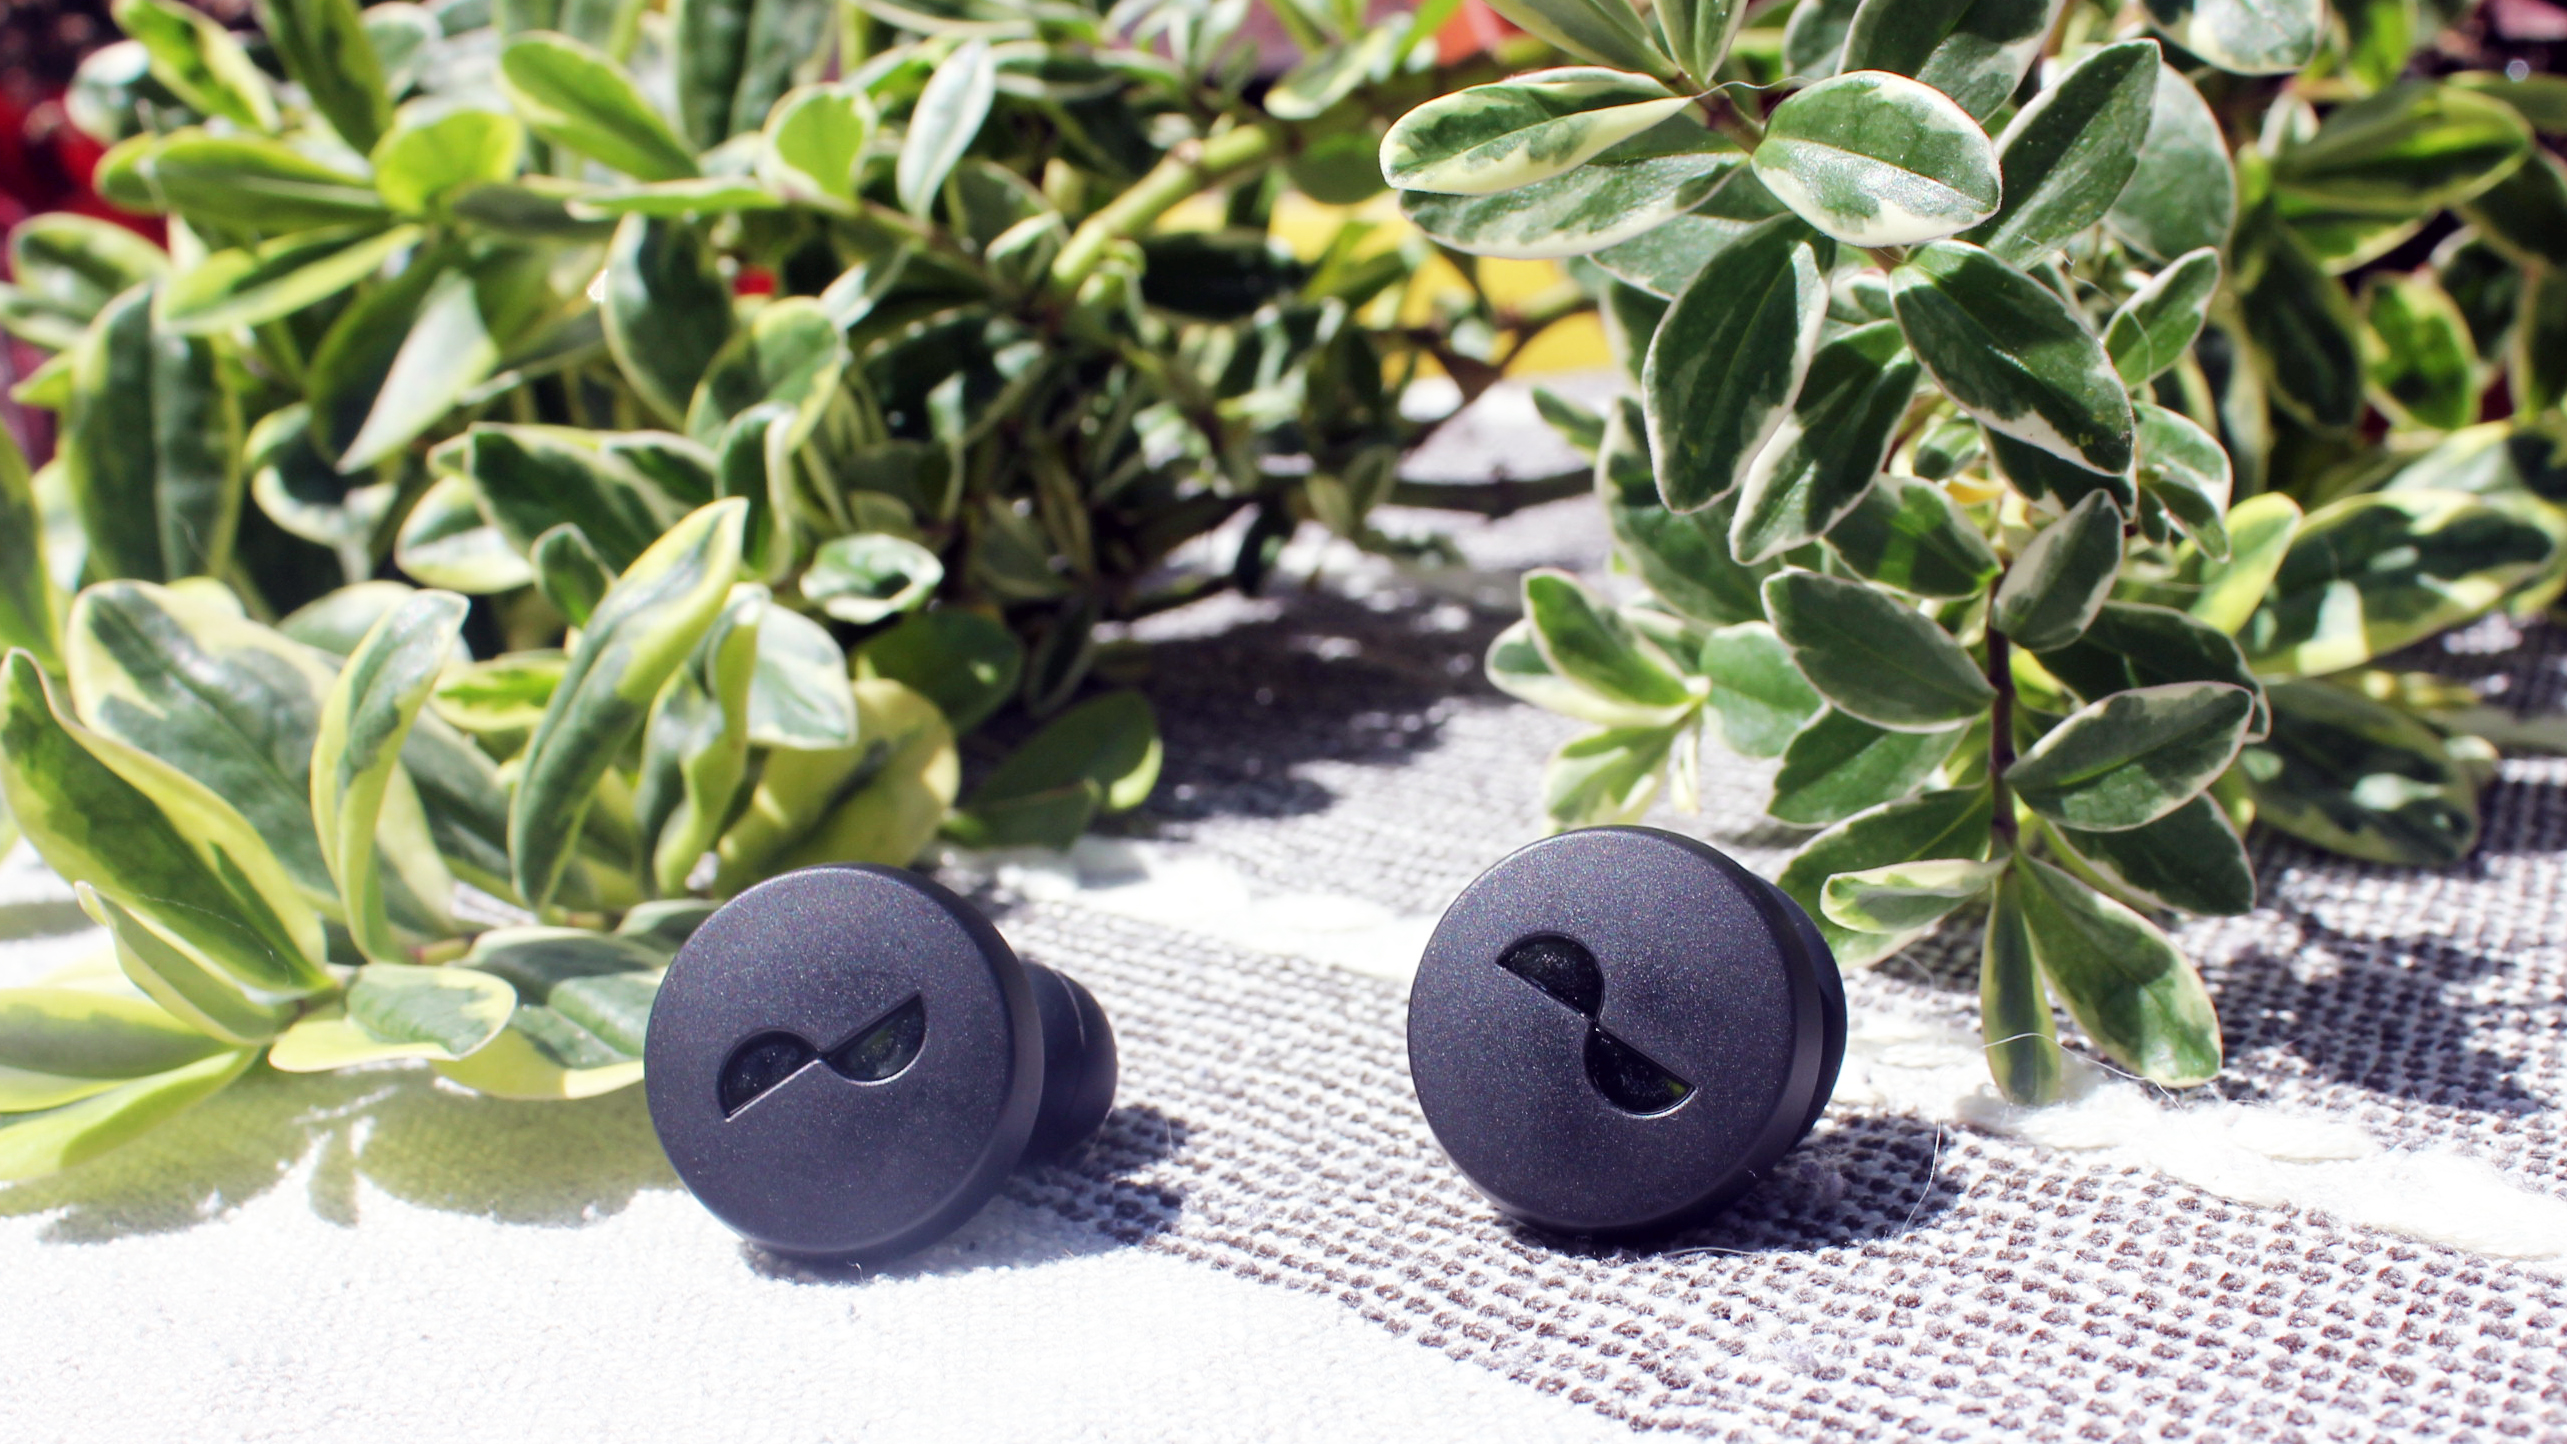 the nuratrue earbuds on an outdoor table with plants in the background